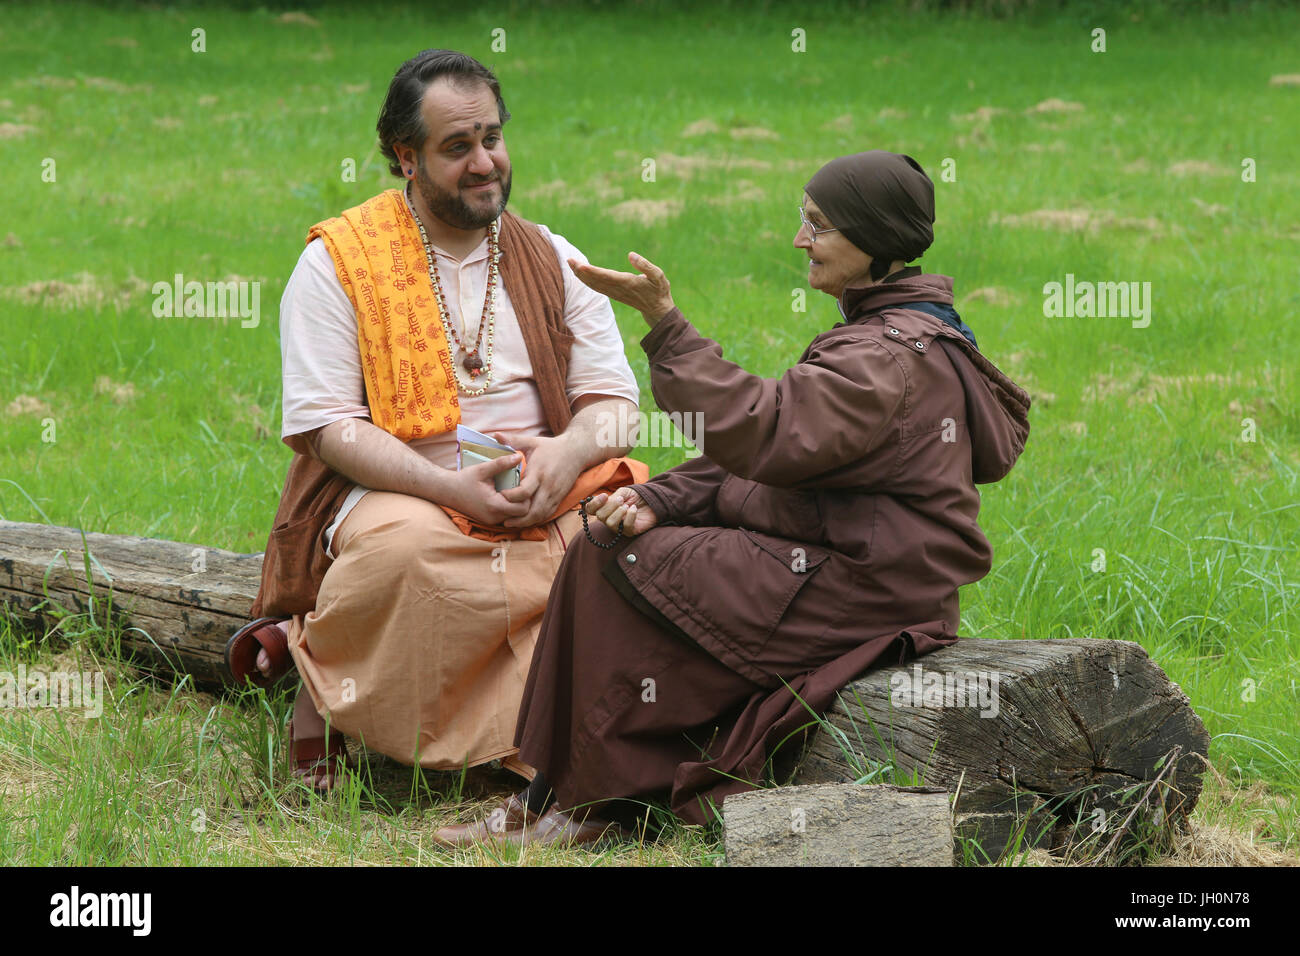 Dialogue in the garden of the Ramakrishna vedantic center. Gretz. France. - Stock Image